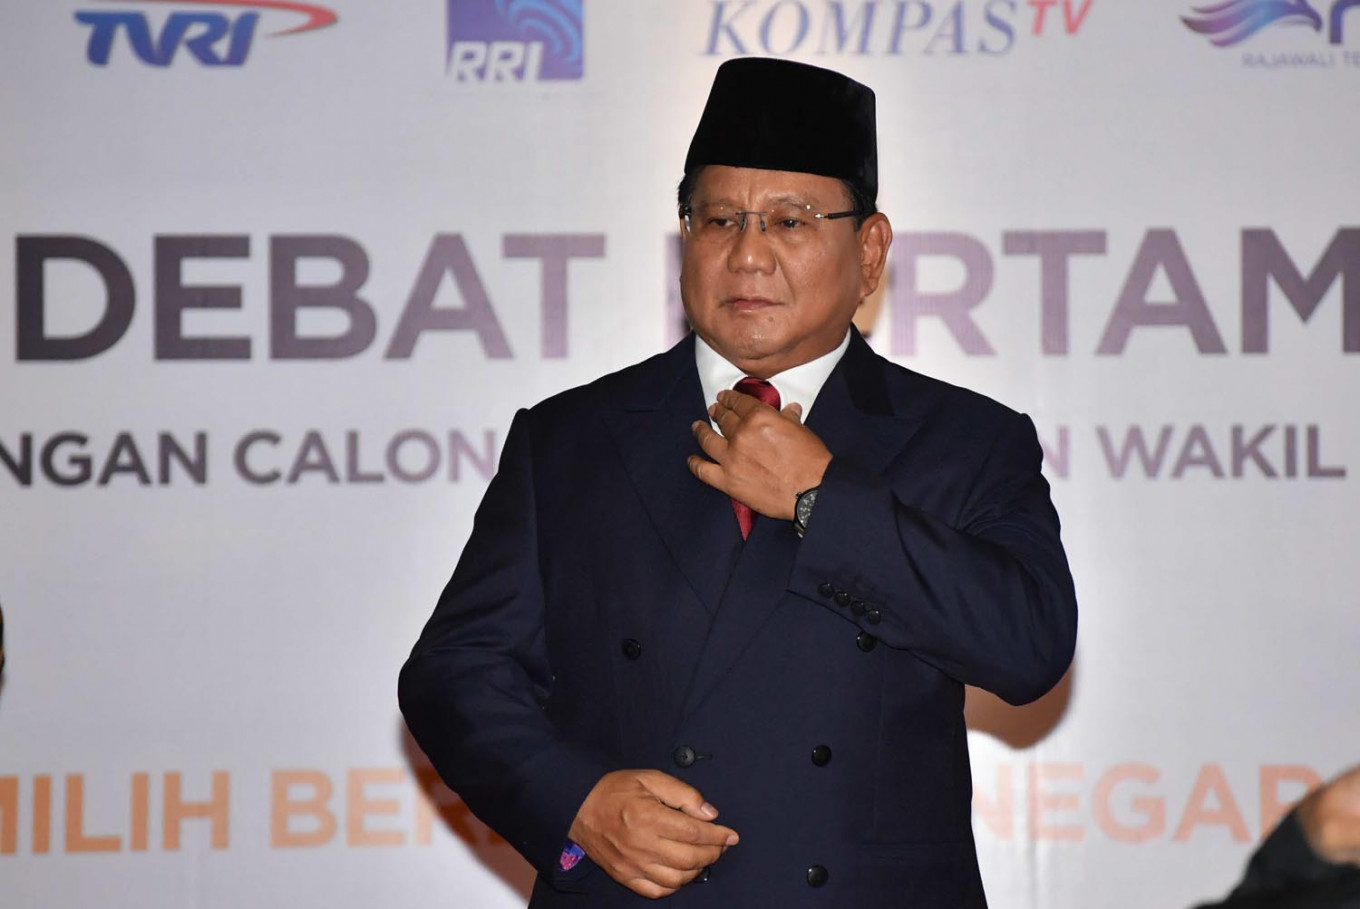 Prabowo will not create Islamic caliphate, says Christian brother